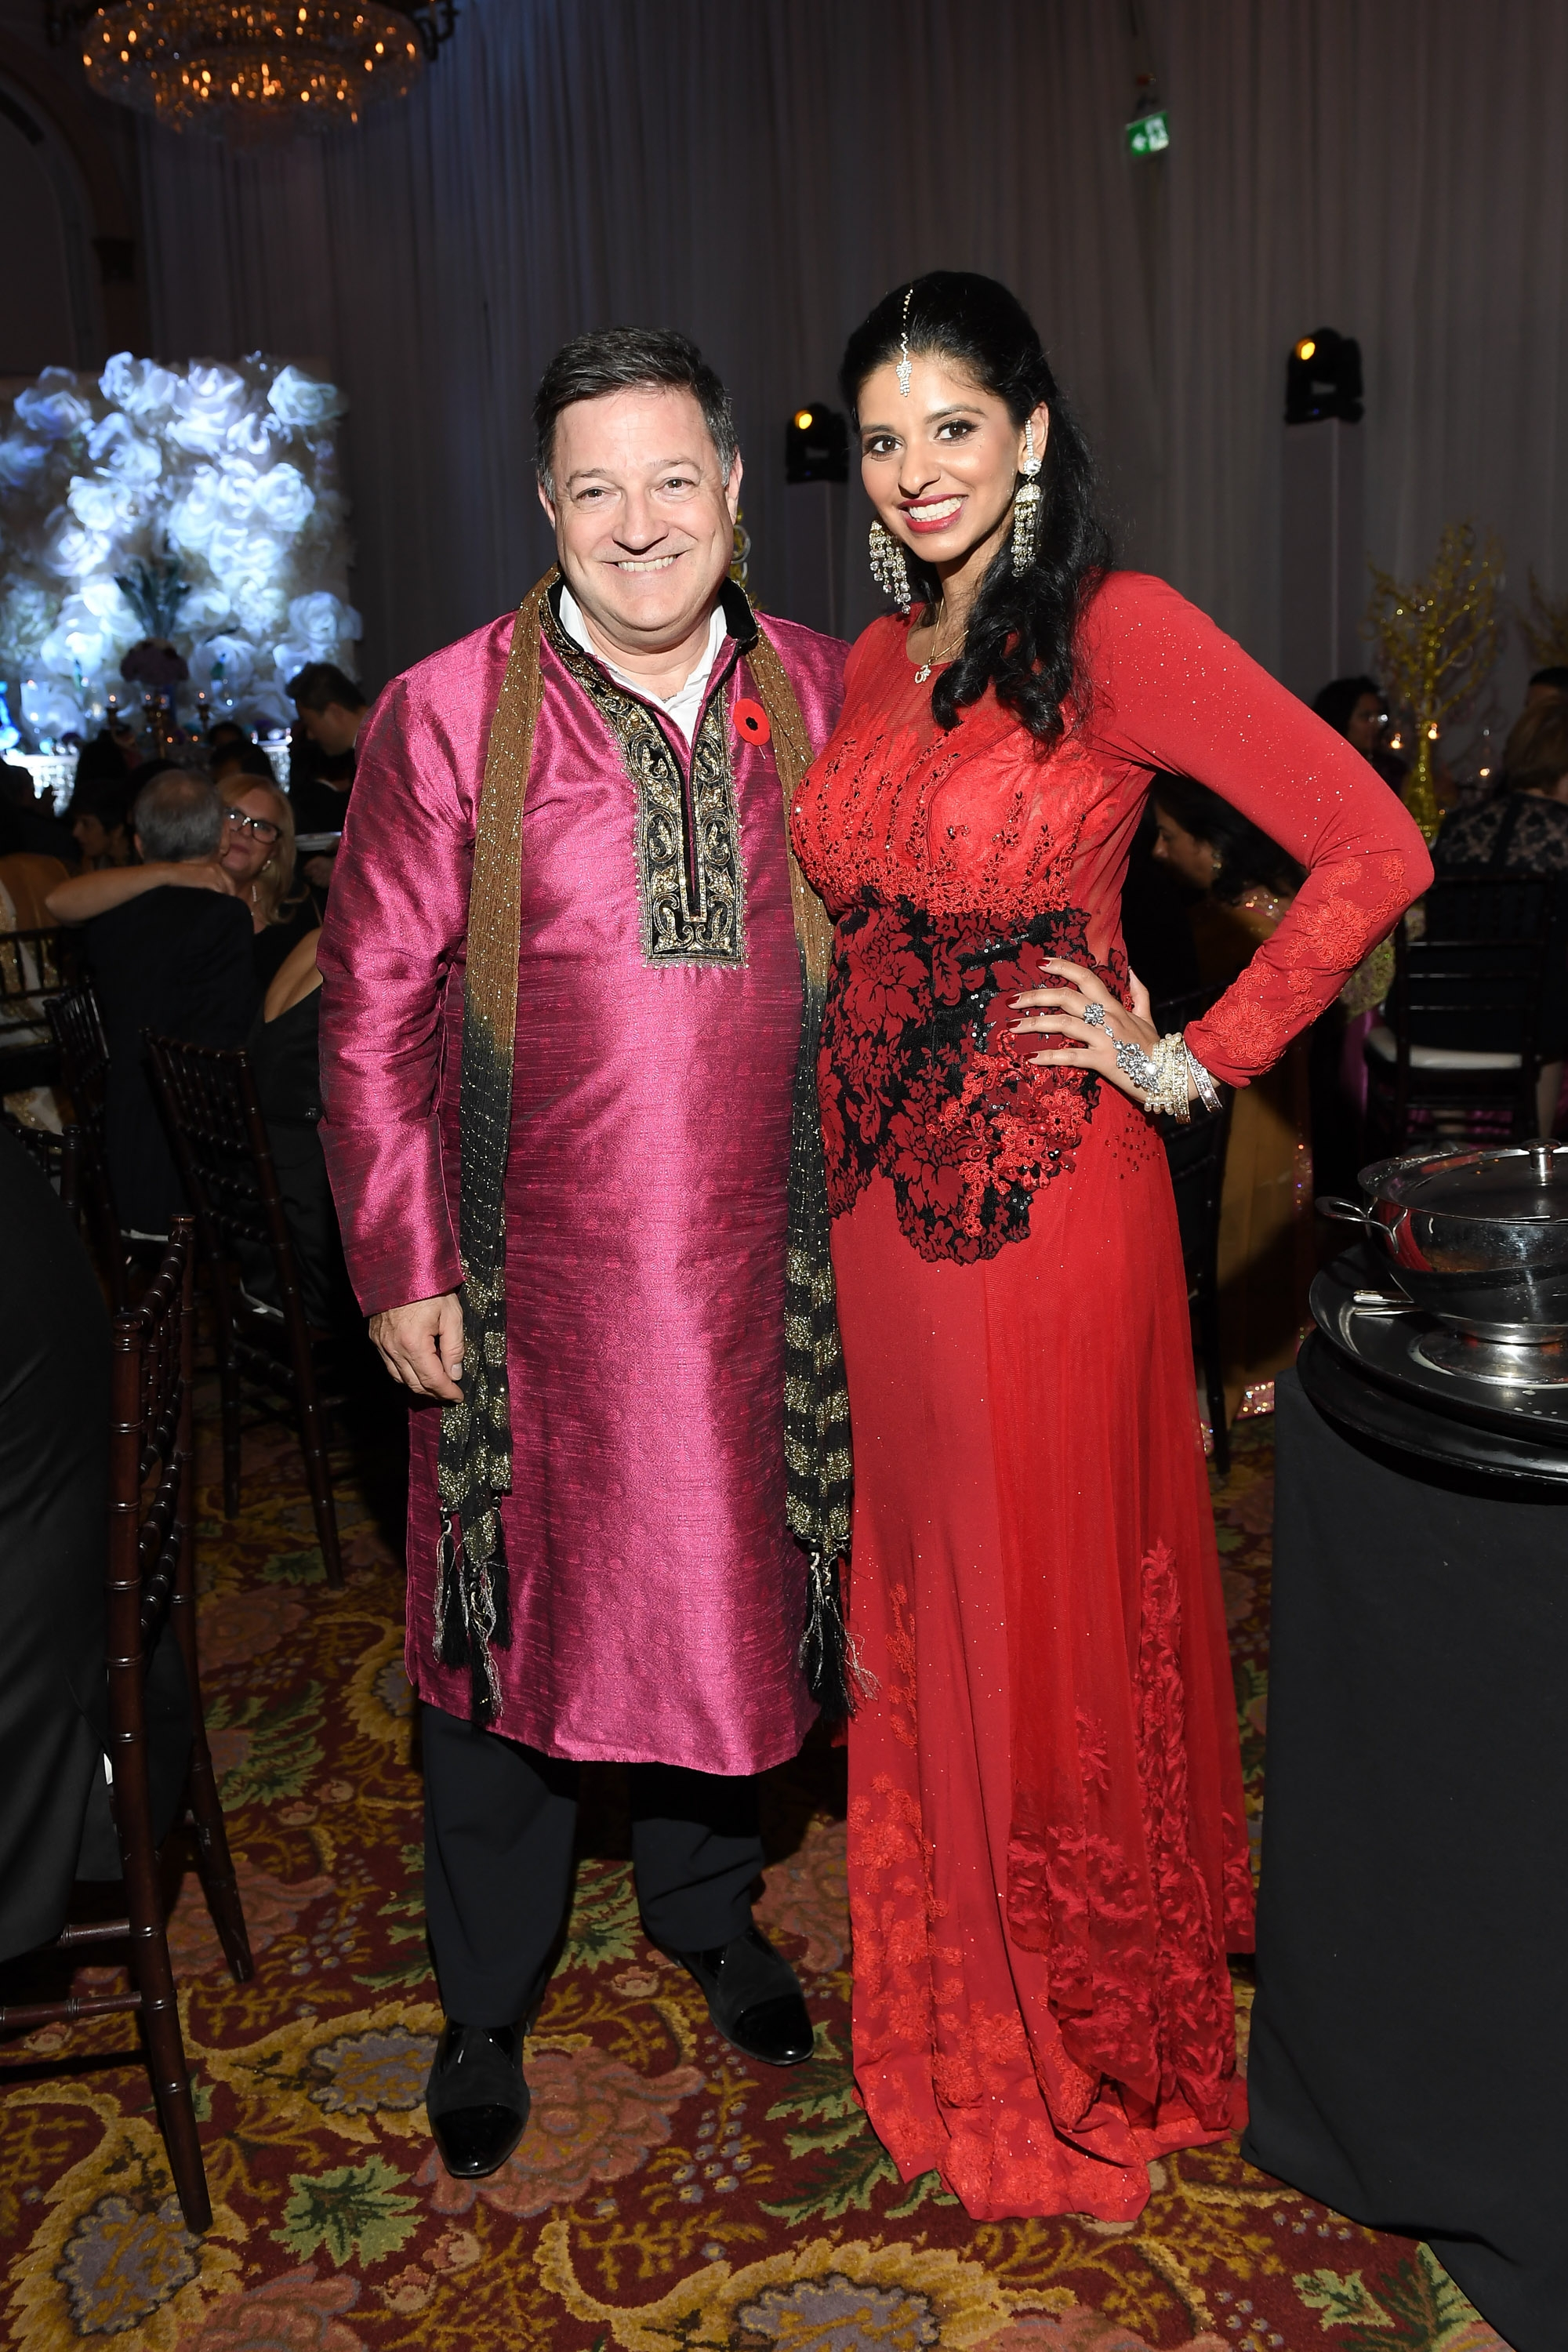 Diwali Emcee Kevin Frankish and Event Co-Chair Reetu Gupta